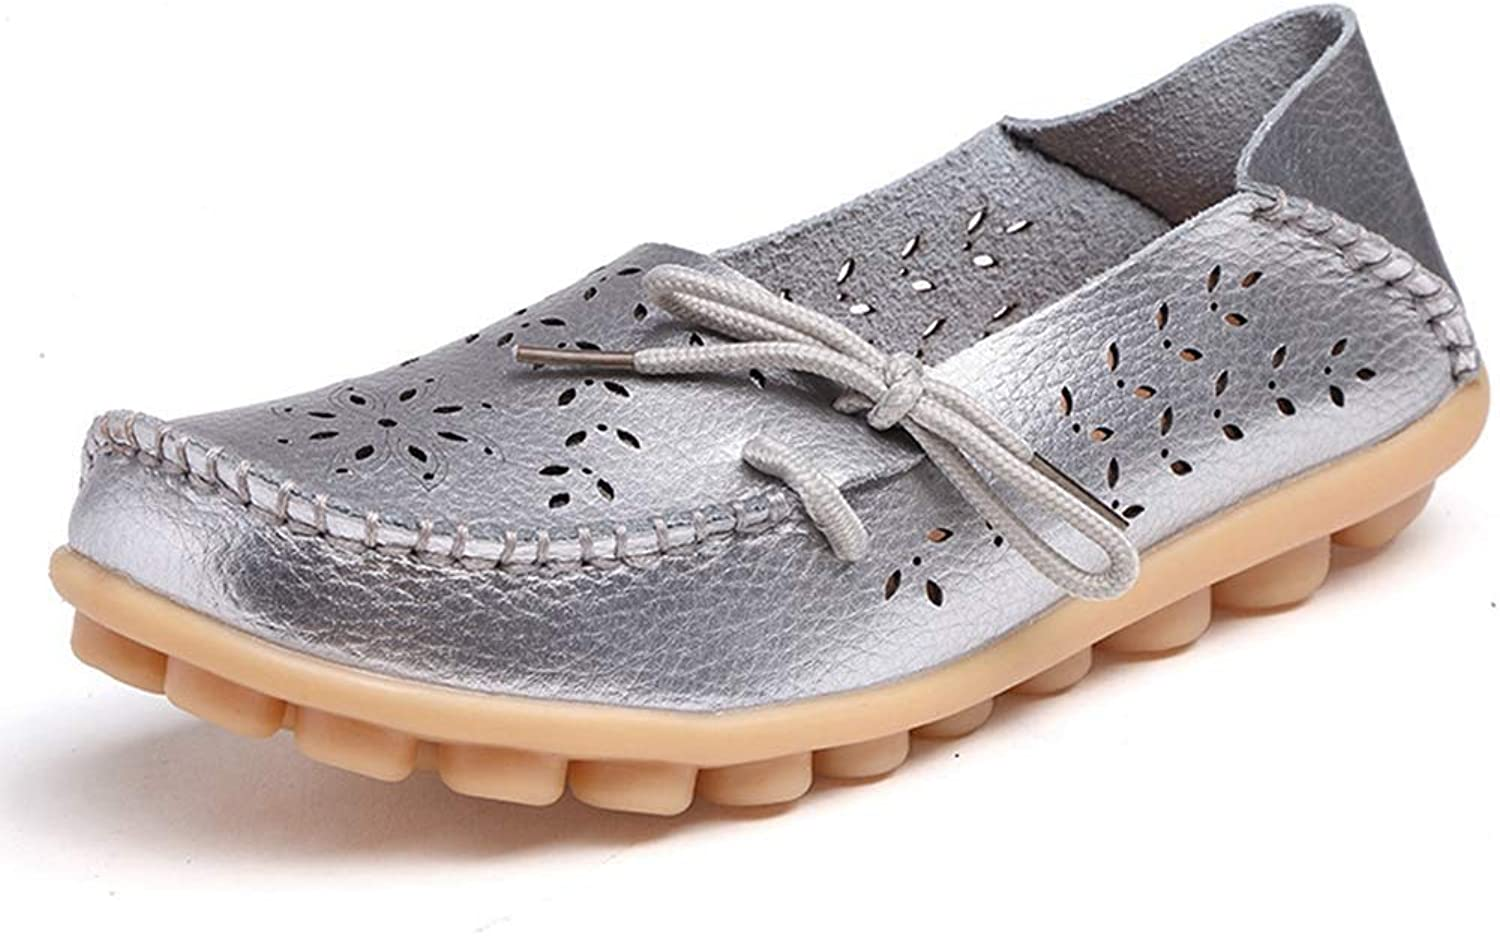 Elsa Wilcox Women Ladies Round Toe Casual Wild Breathable Summer Nurse Leather Slip-On Driving Walking Flats shoes Comfortable Loafers